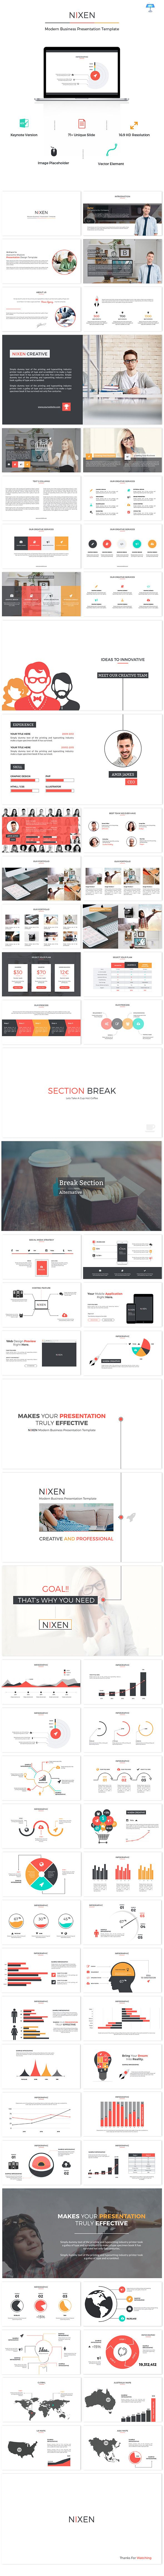 Nixen Keynote Presentation Template #design #slides Download: http://graphicriver.net/item/nixen-keynote-presentation/12334834?ref=ksioks